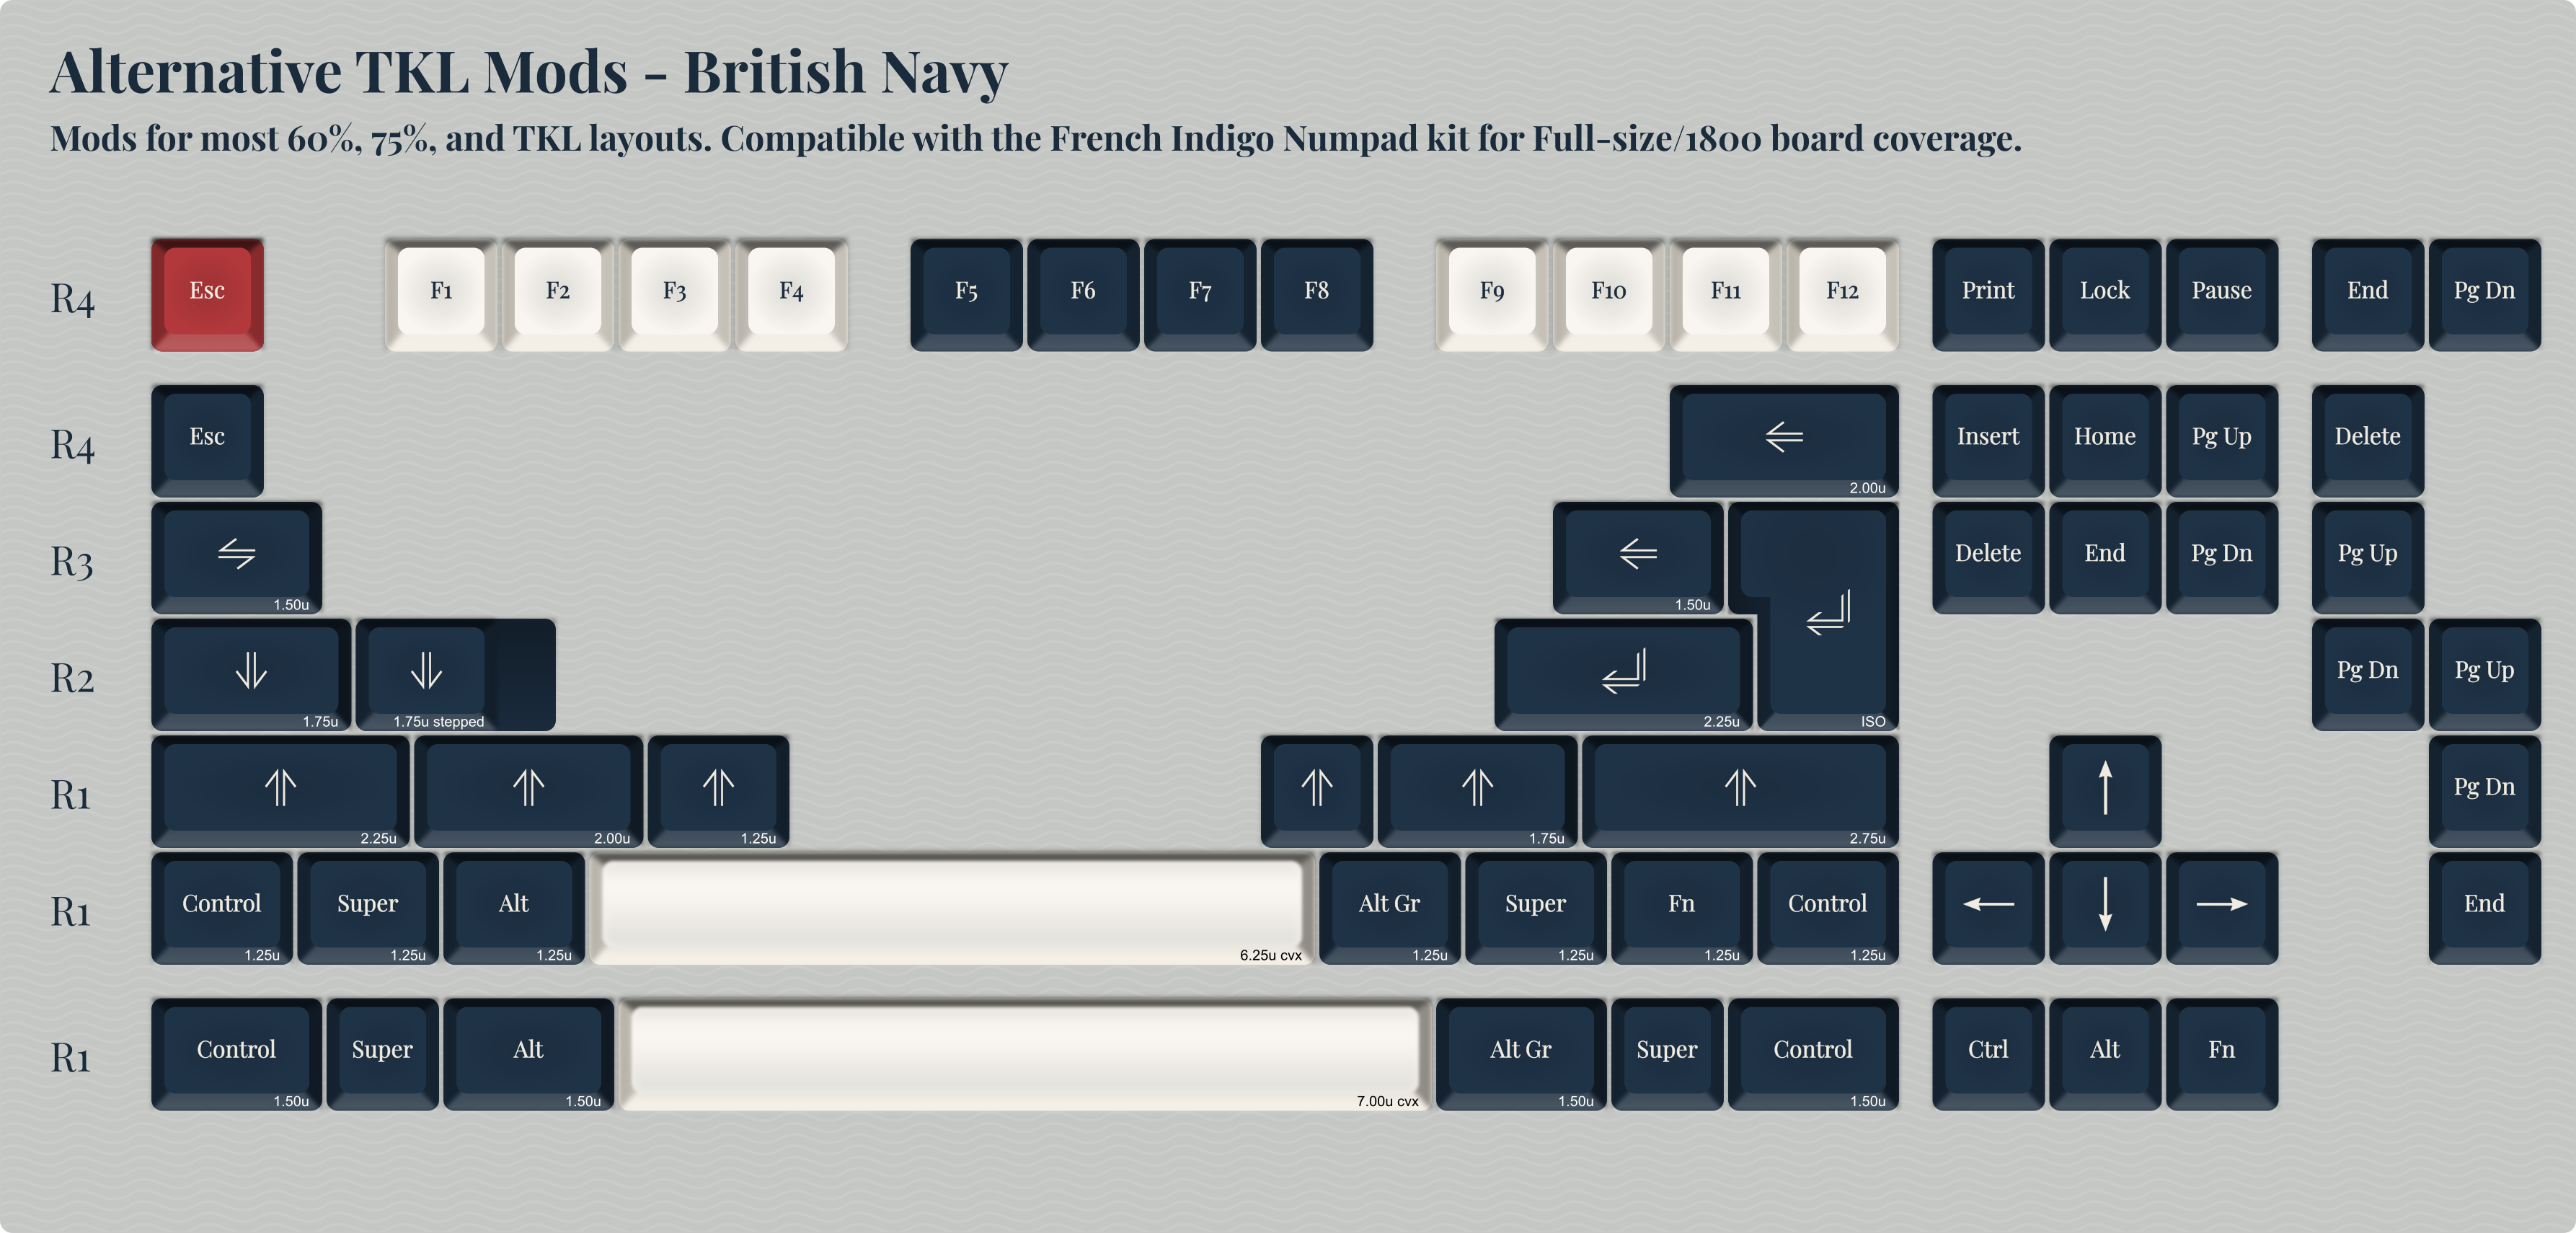 Alt TKL Mods - British Navy